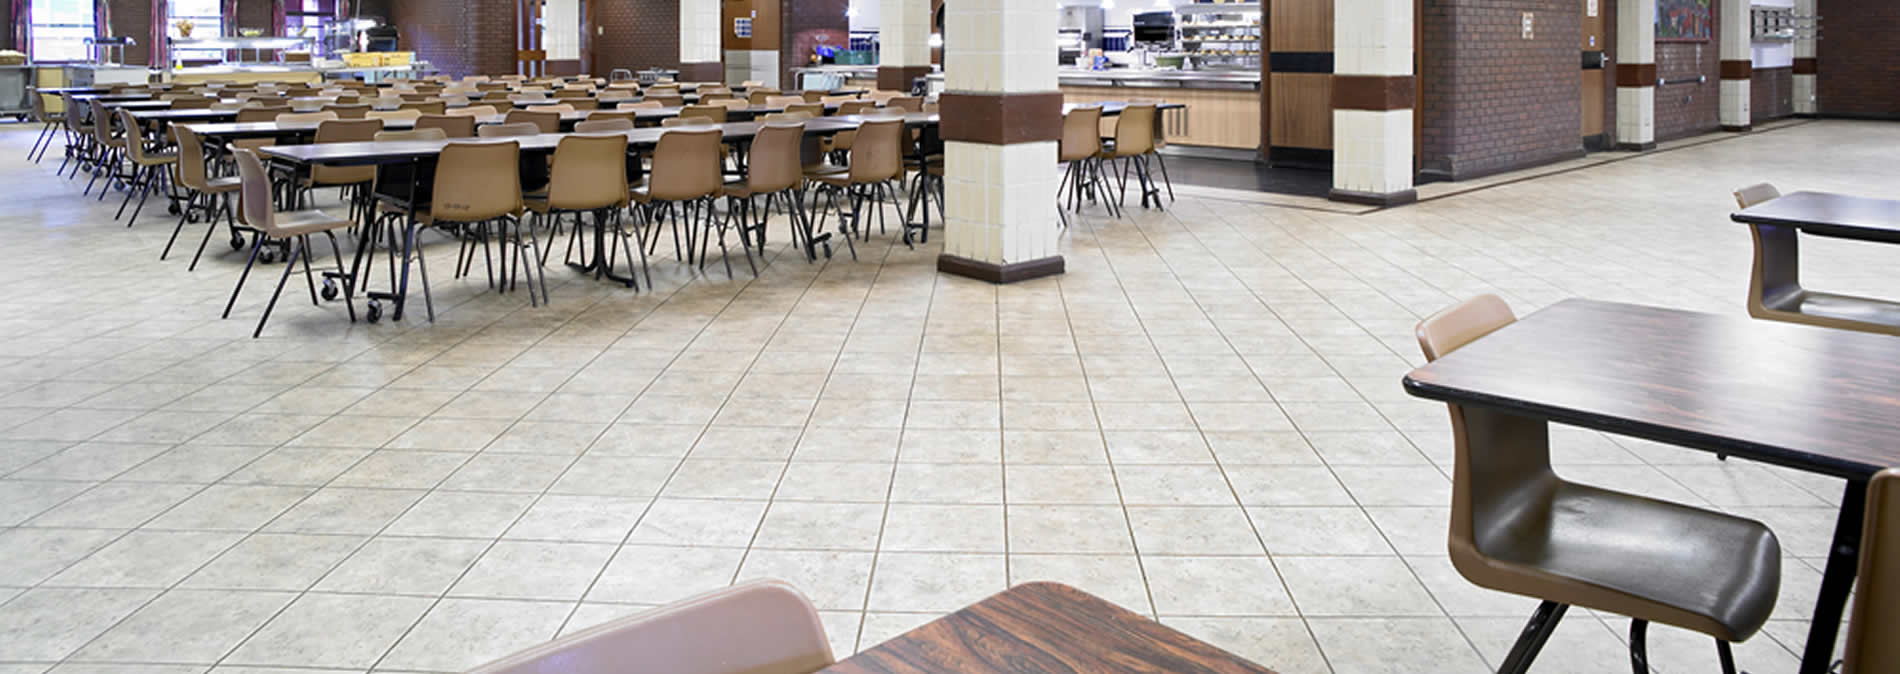 Flooring Contractors Wooden Safety Rubber Vinyl Flooring LGM Ltd - Vinyl flooring coventry